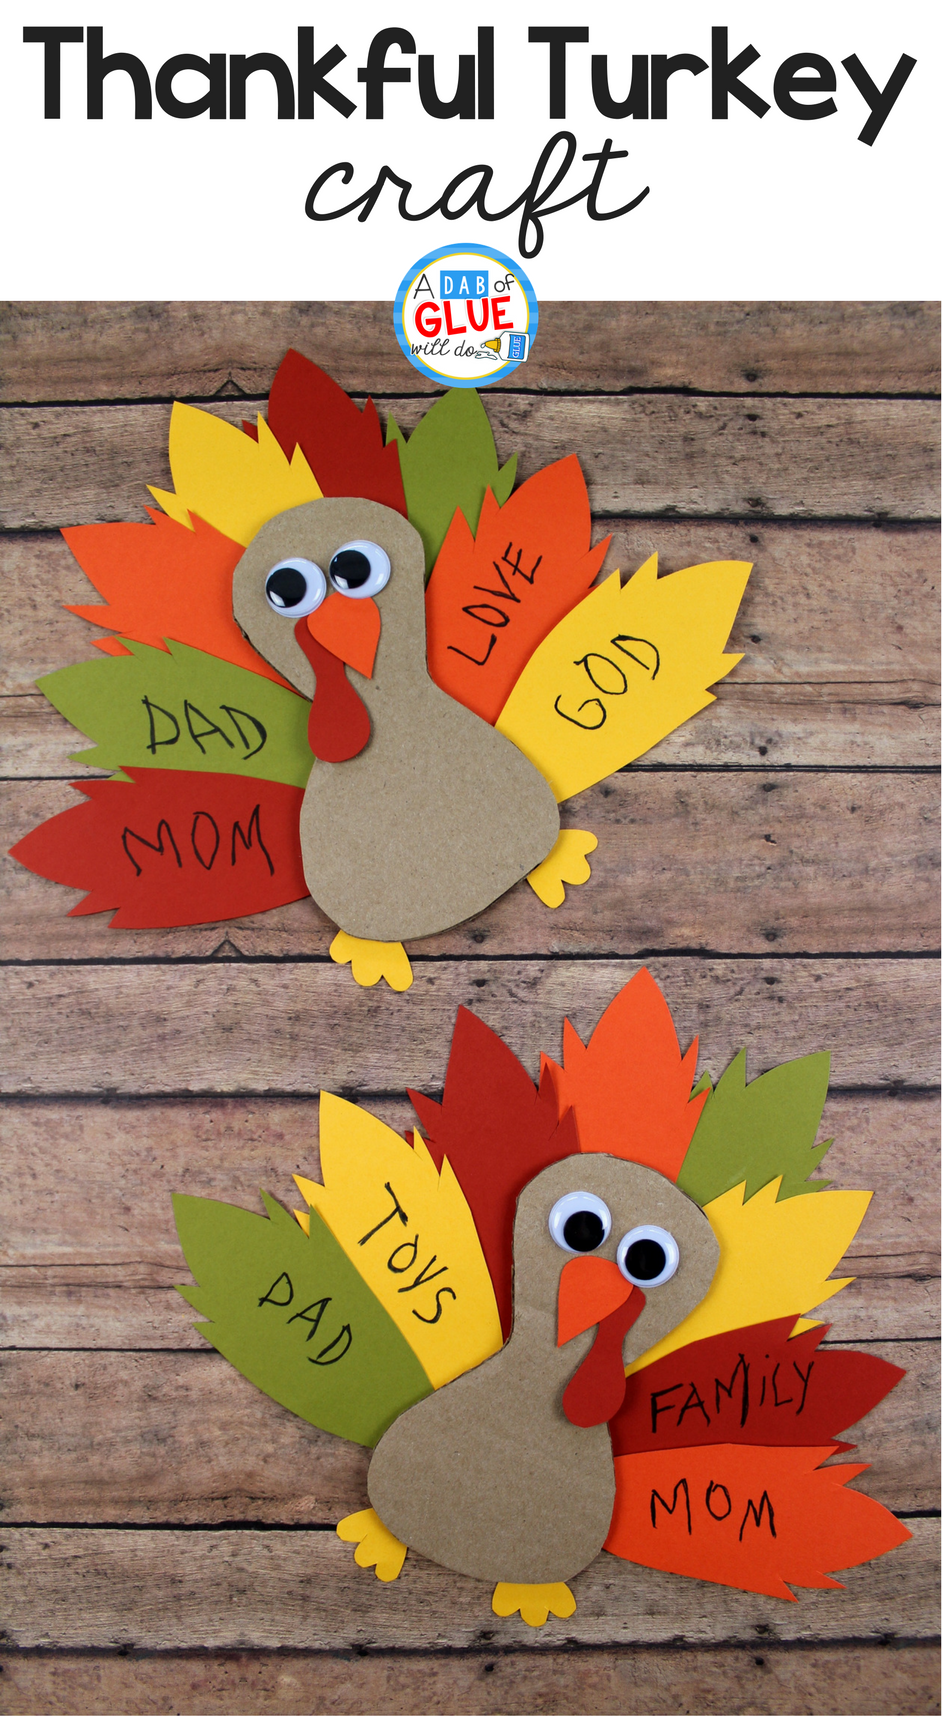 Cardboard Thankful Turkey Craft #fallcraftsfortoddlers